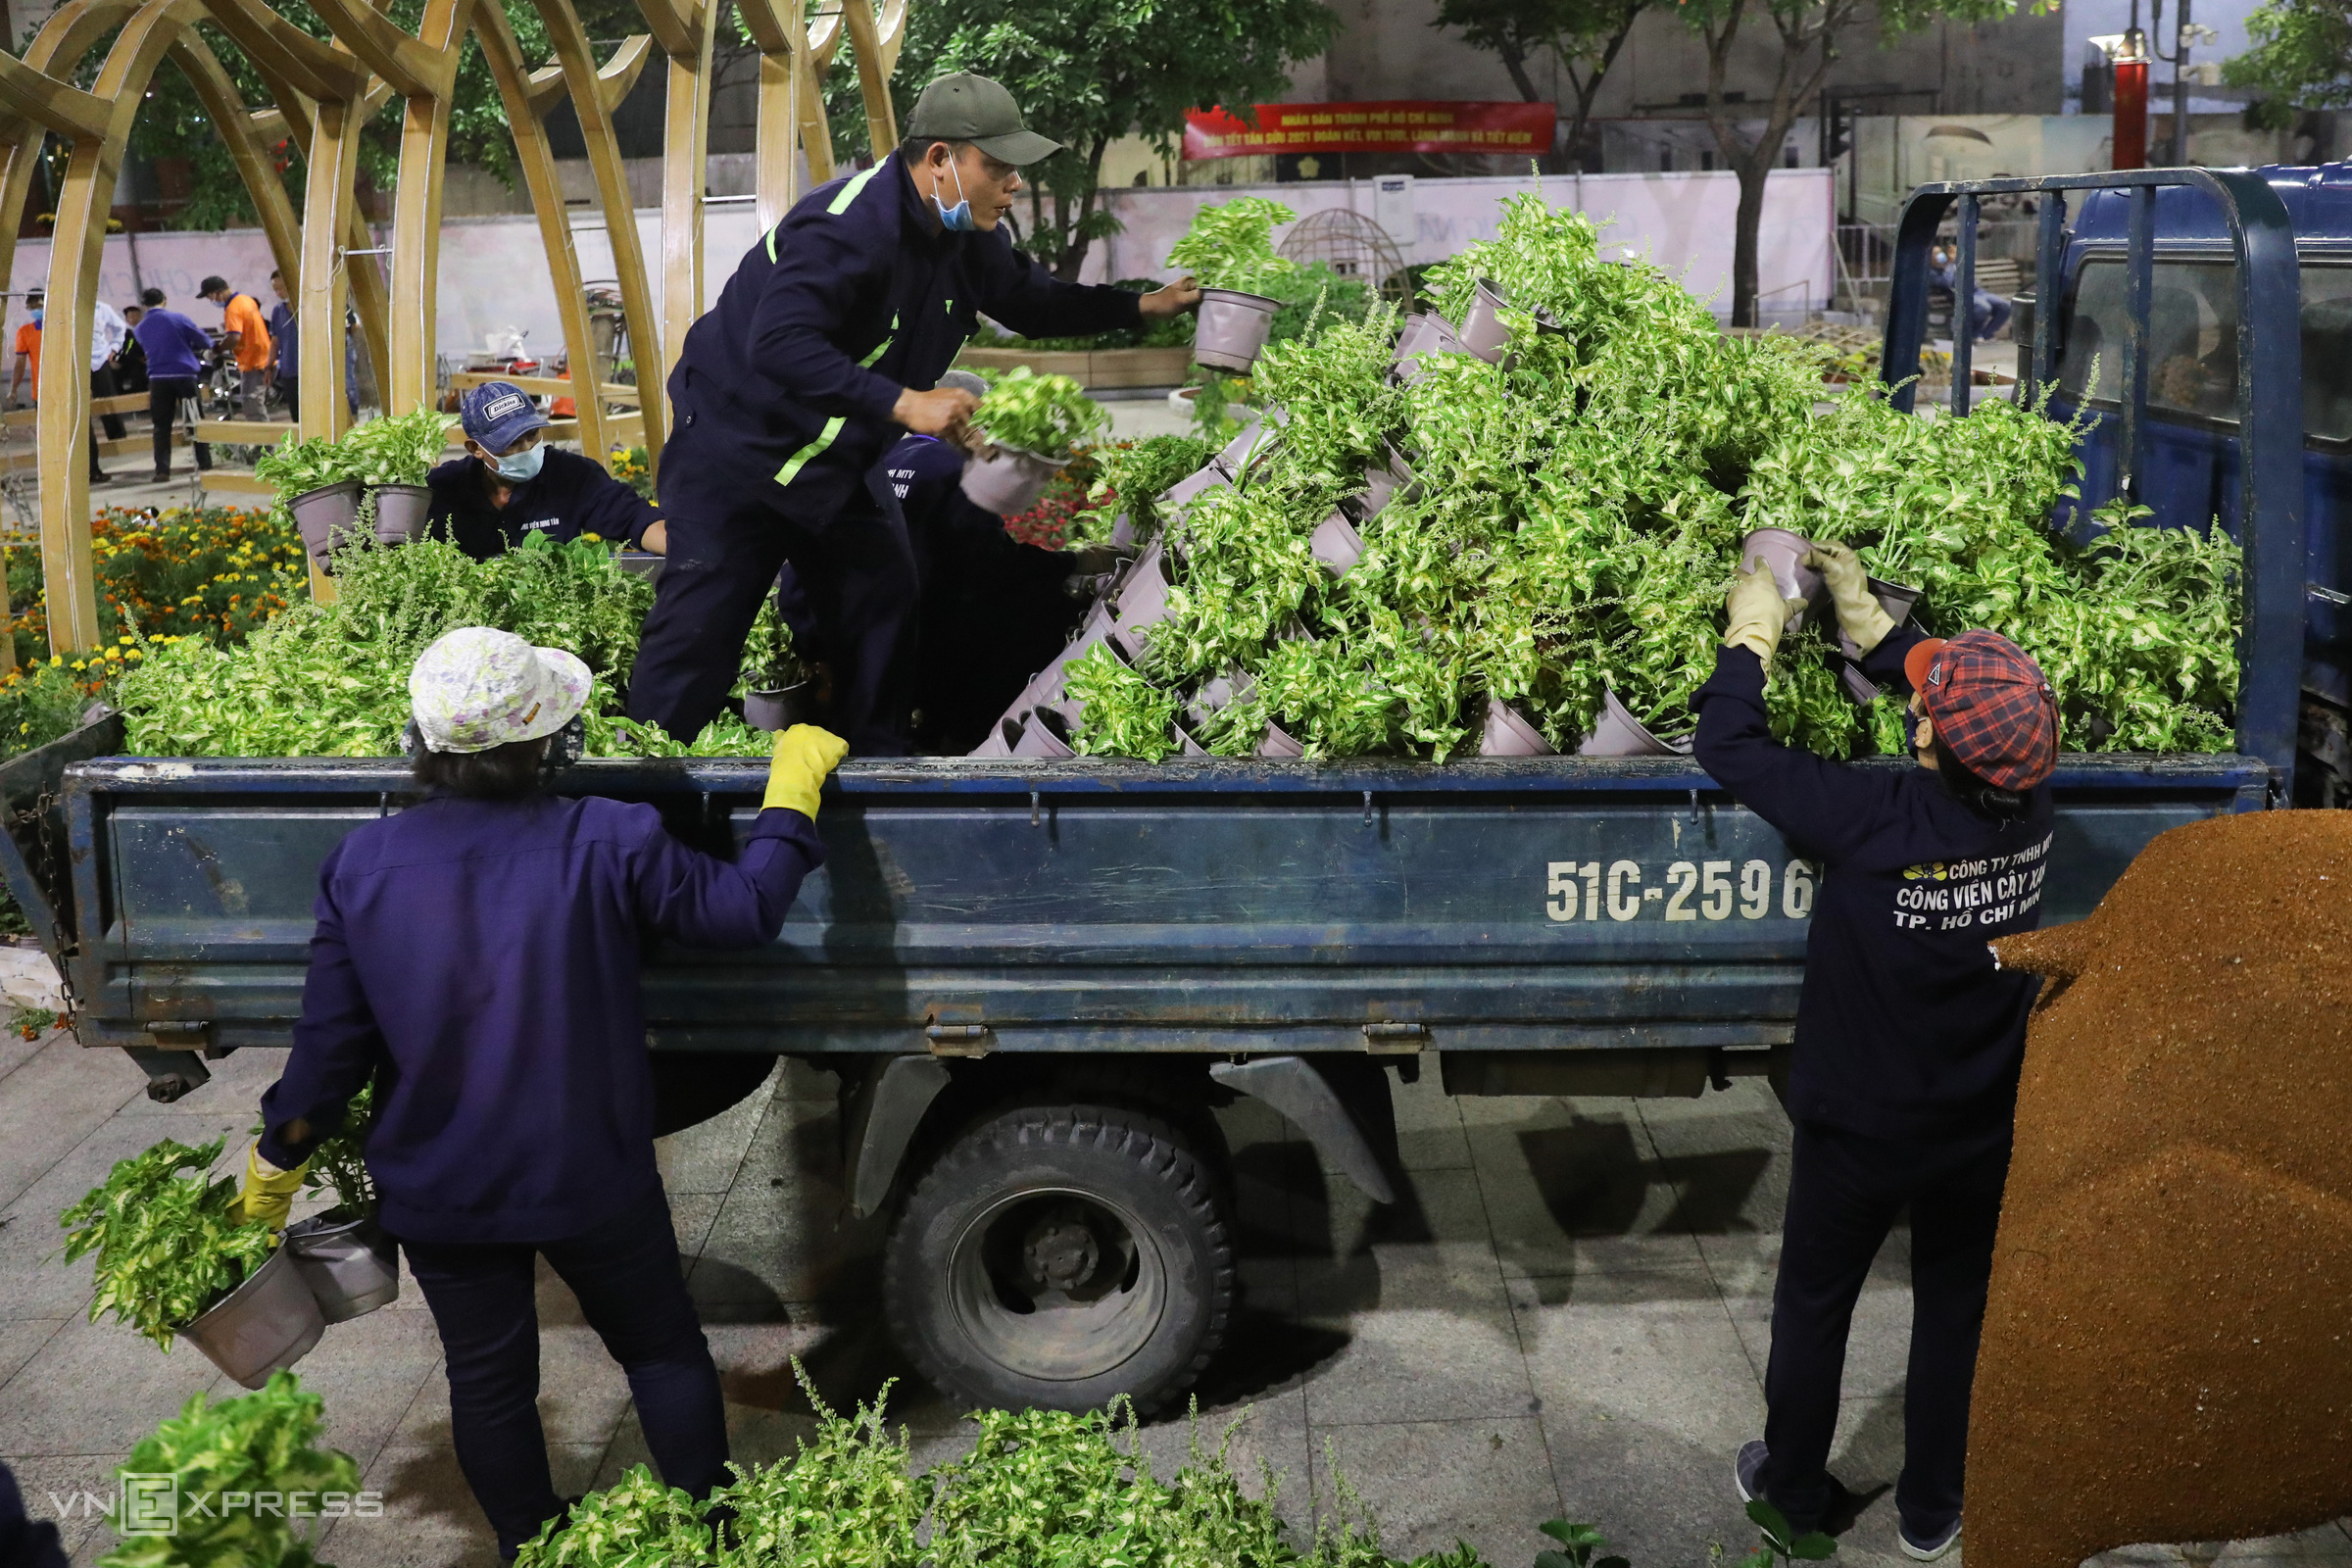 Sanitation workers classify flower pots. If those flowers are fresh, they will be stowed into trucks for reuse in parks and tourist areas.